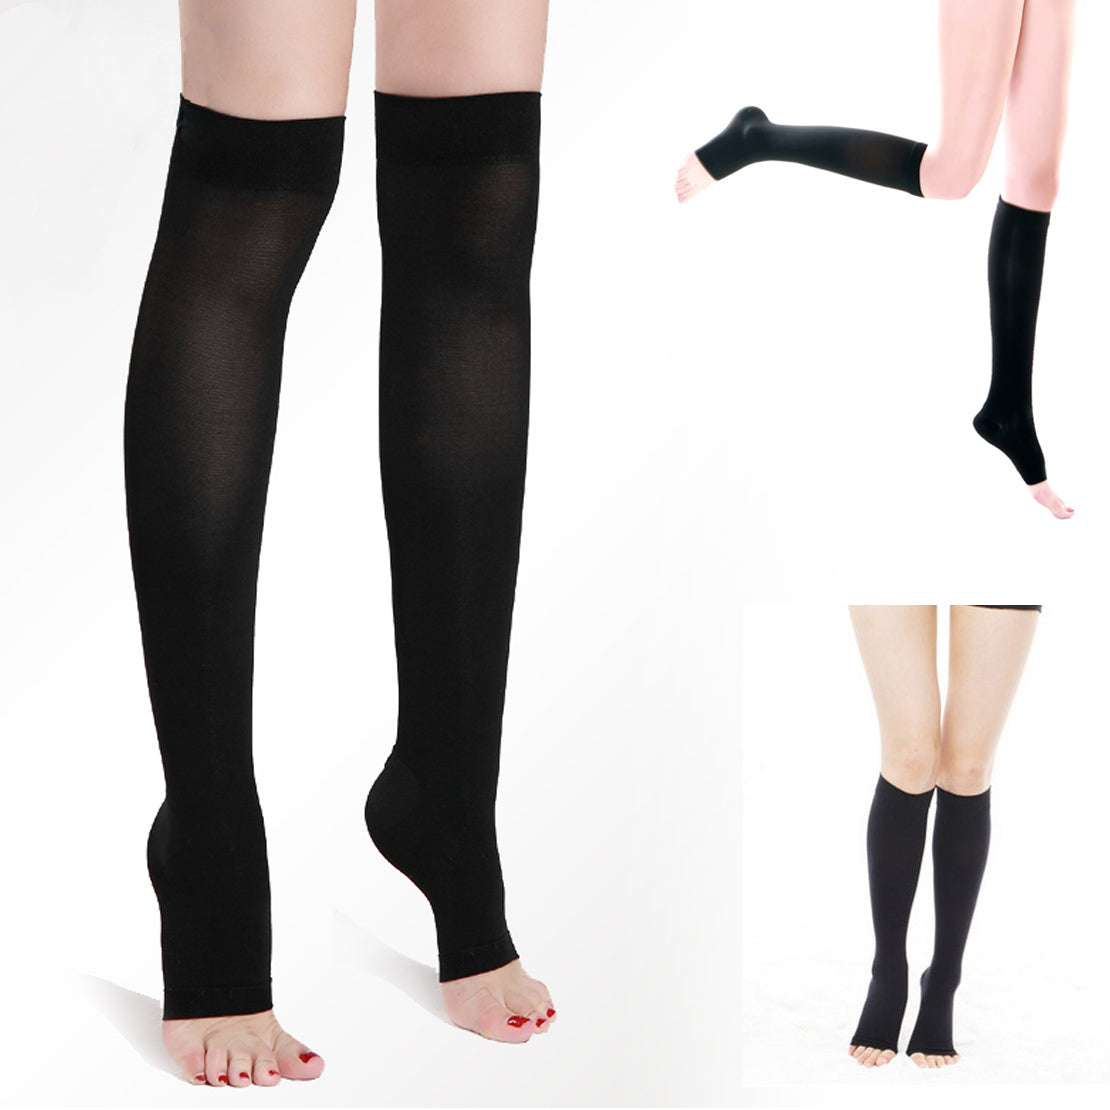 1 Pair New Women Acrylon Knee High Compression Slim Thin Leg 30-40